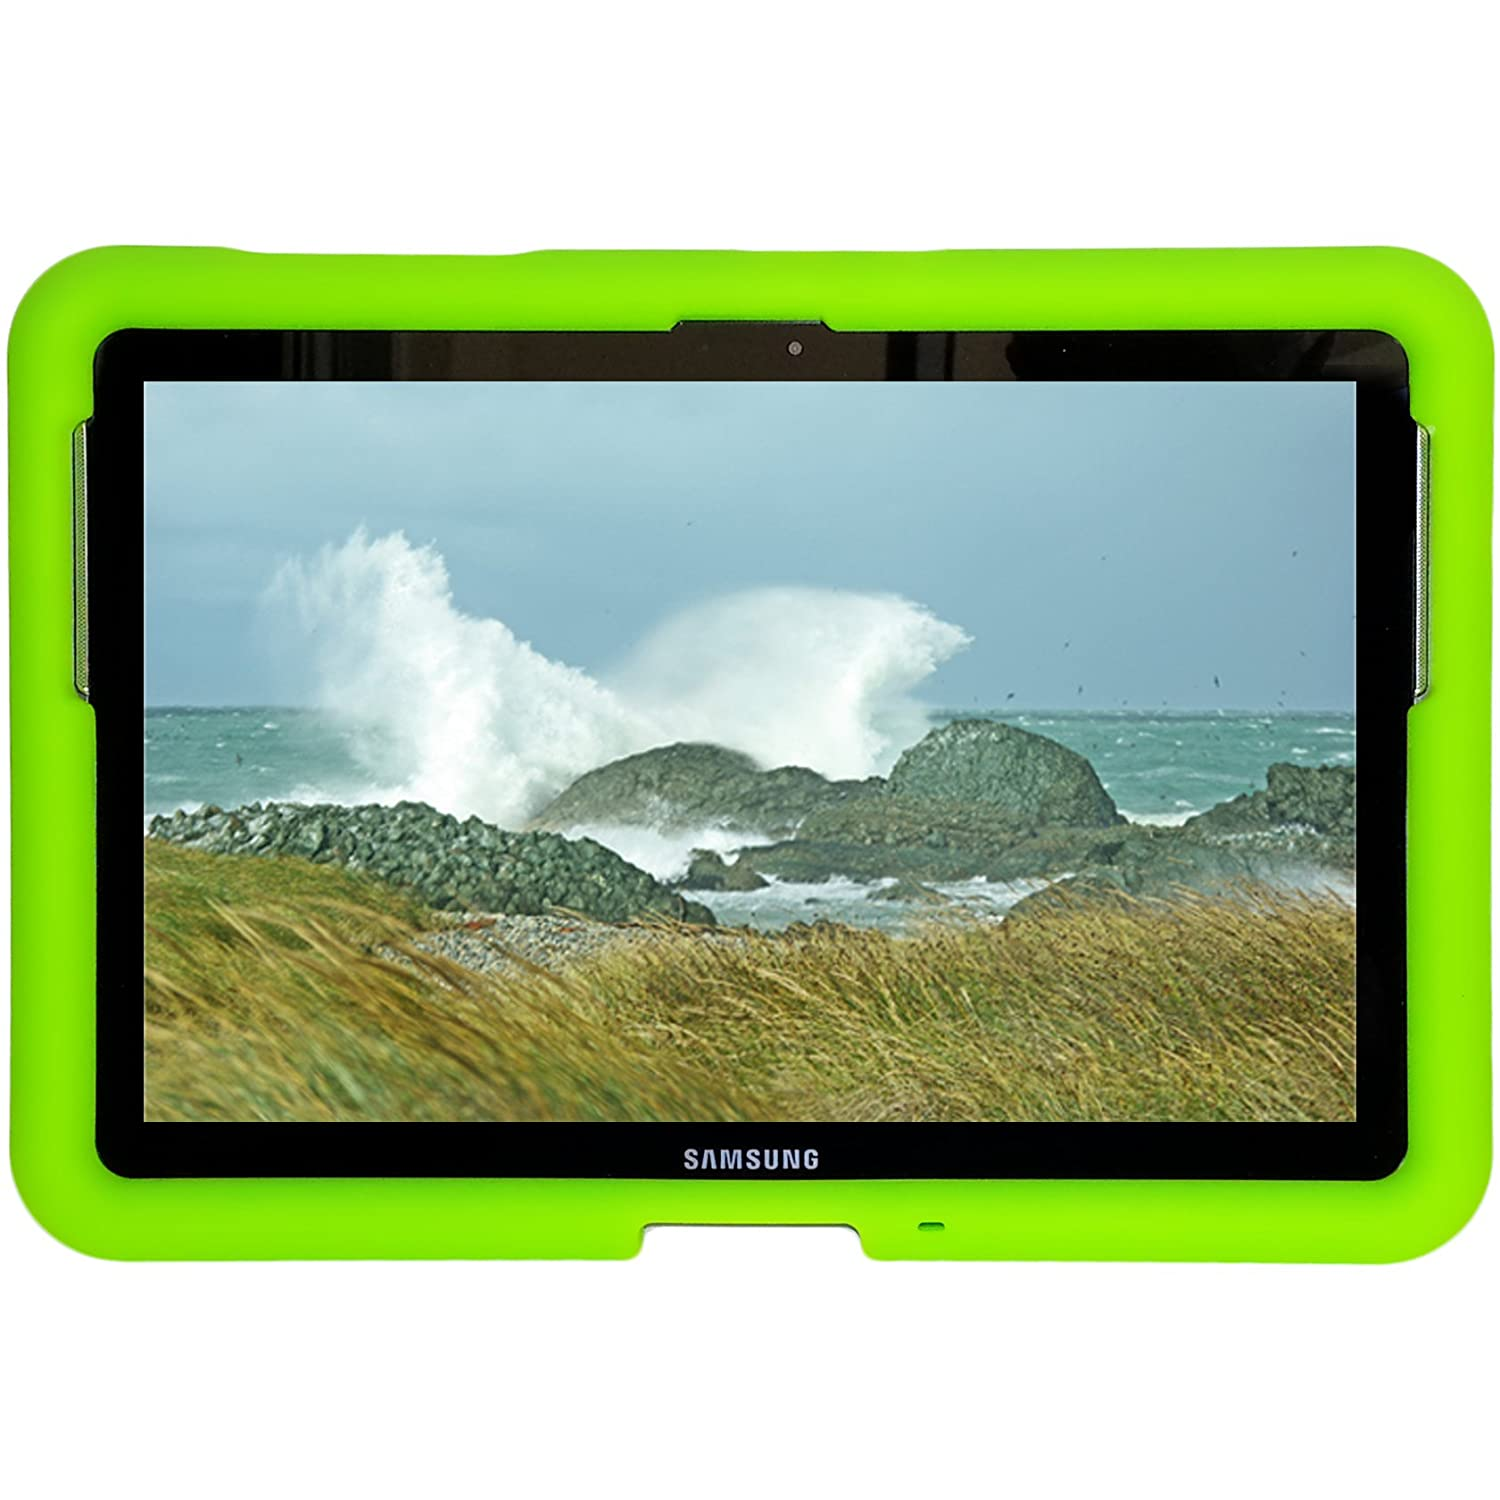 Bobj Rugged Case for Samsung 10.1 Galaxy Tab and Galaxy Tab2 - BobjGear protective cover - Gotcha Green